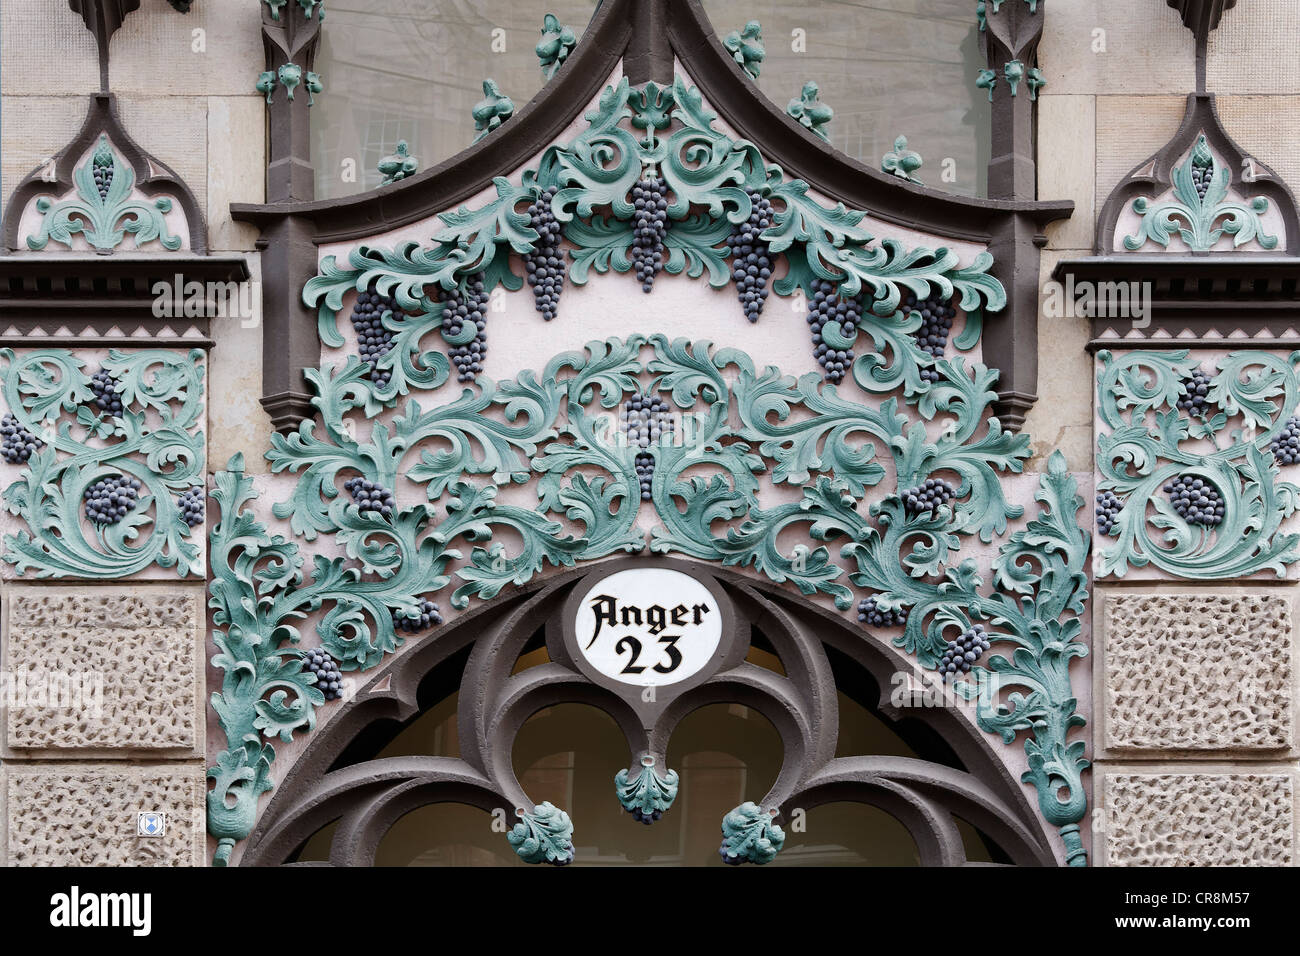 Anger 23 commercial building, art nouveau facade, portal decorated with vine leaves, Erfurt, Thuringia, Germany, - Stock Image